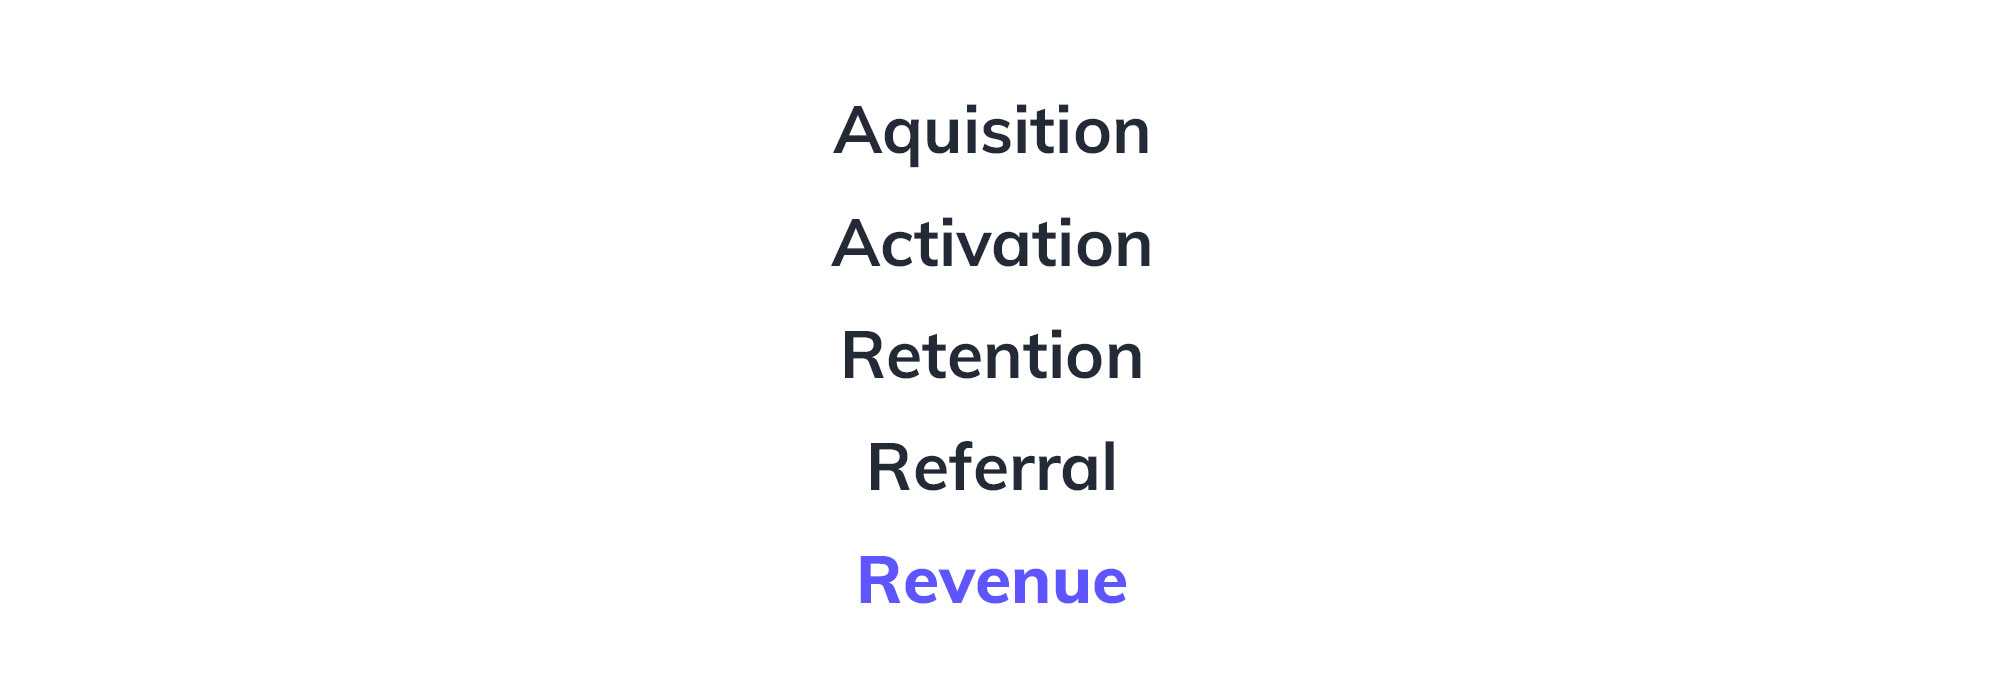 This is an image of pirate metrics (AARRR metrics). The list reads: acquisition, activation, retention, referral, revenue.